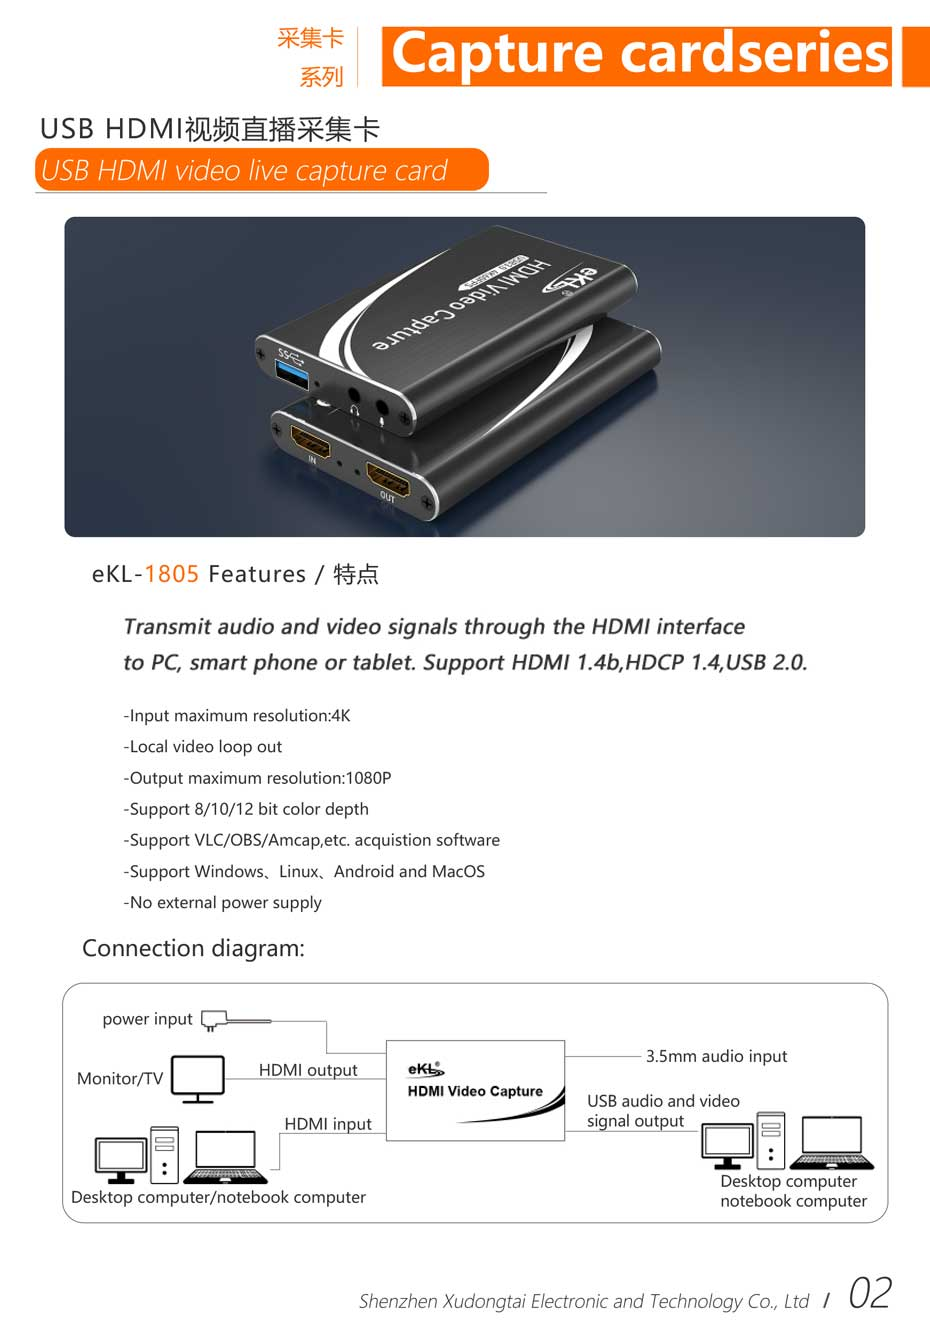 2021 Xudongtai ekL Electronic Product Manual-Introduction to Capture Card